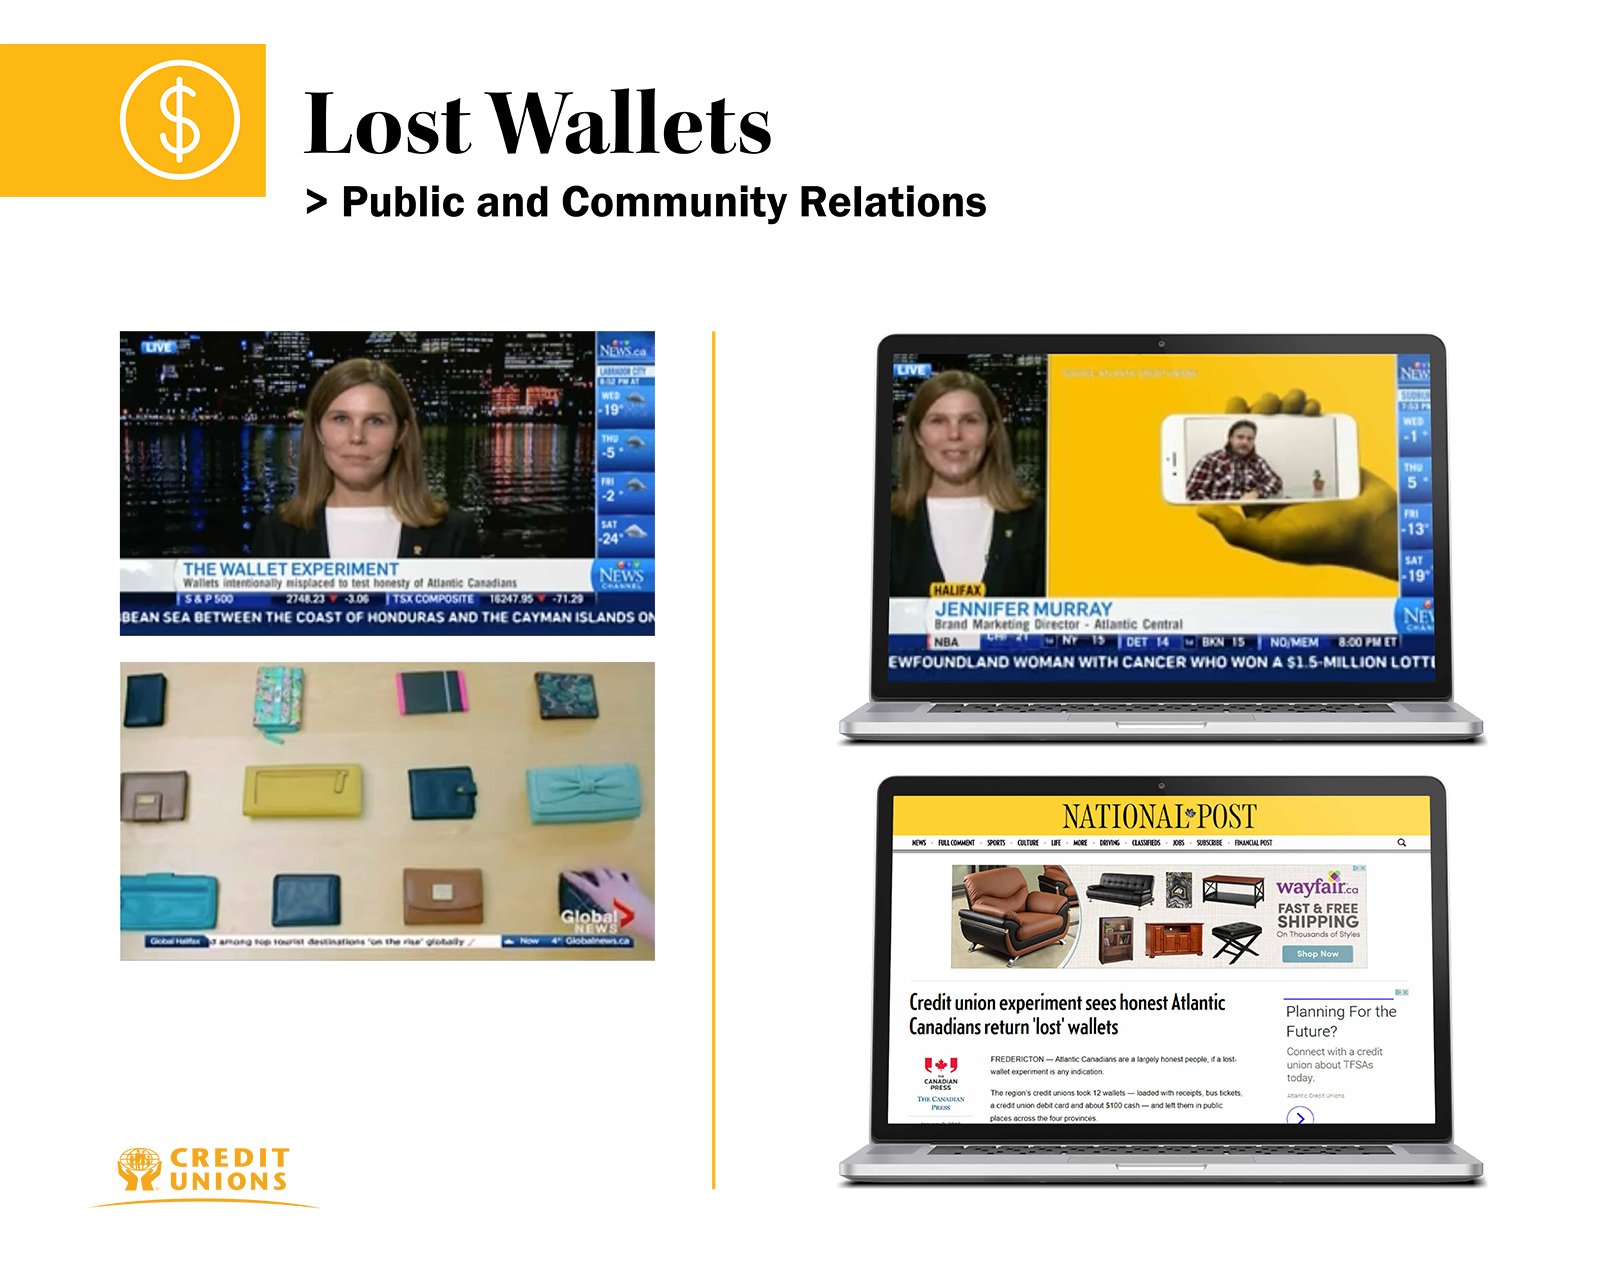 Lost wallet news coverage with news anchor still, computer and mobile phone set news articles.